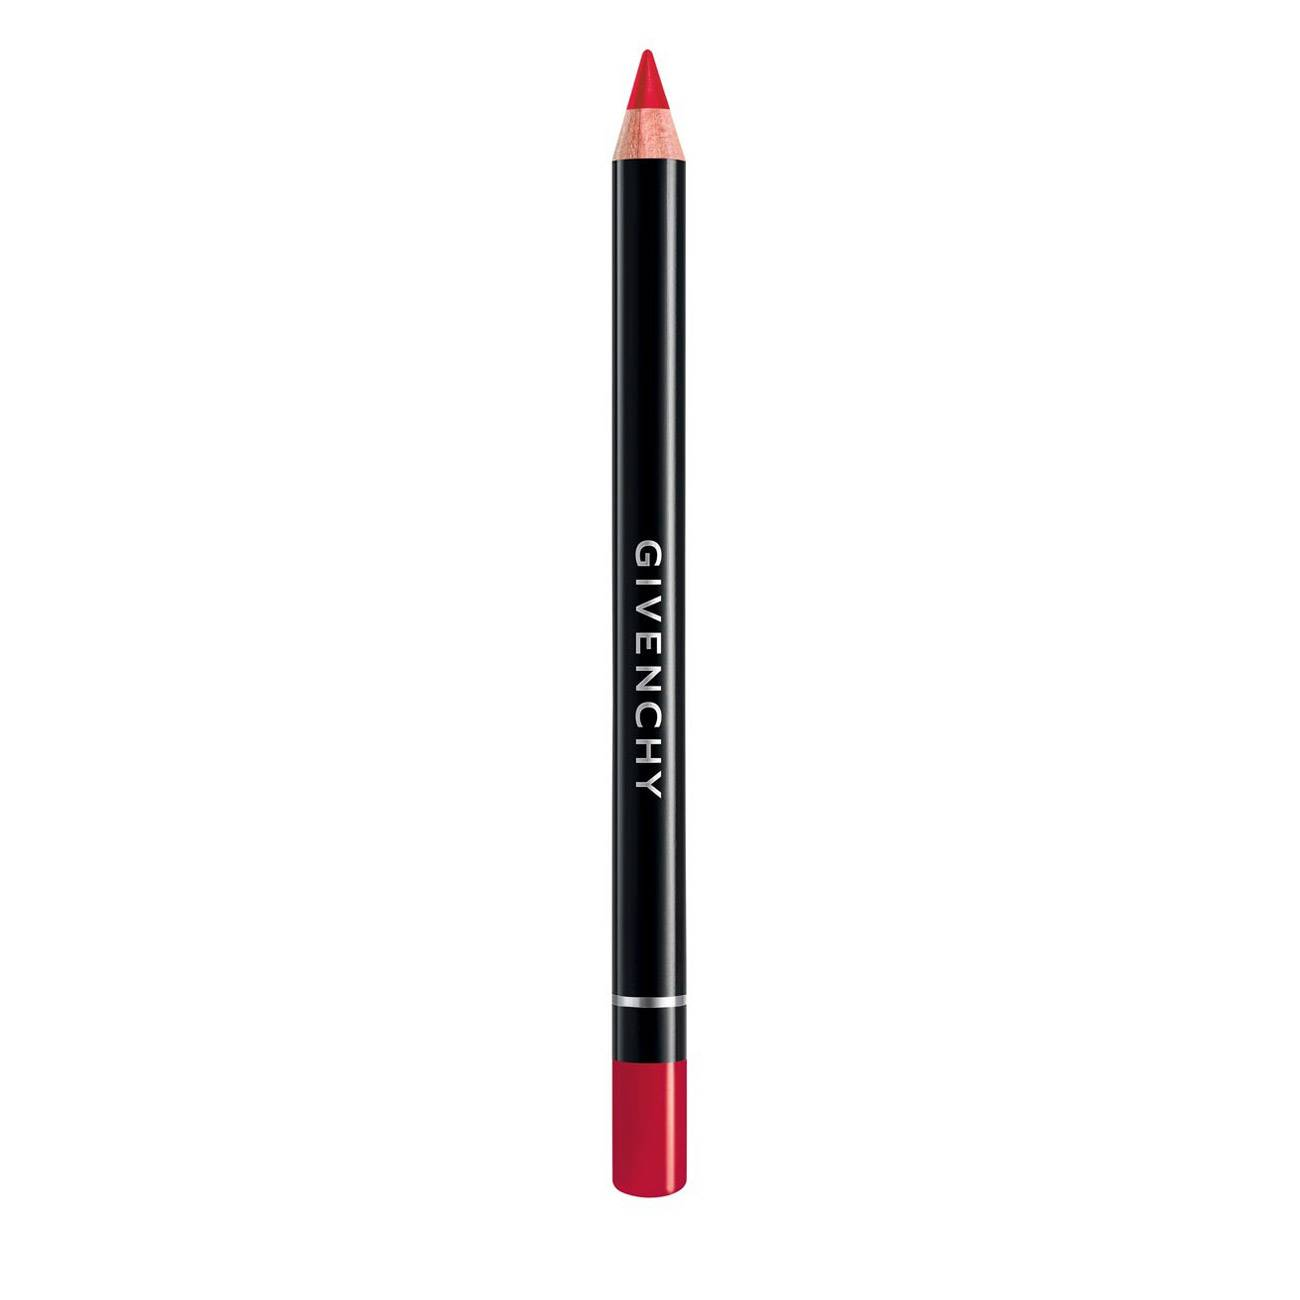 Lip Liner 06 1 Grame Givenchy imagine 2021 bestvalue.eu